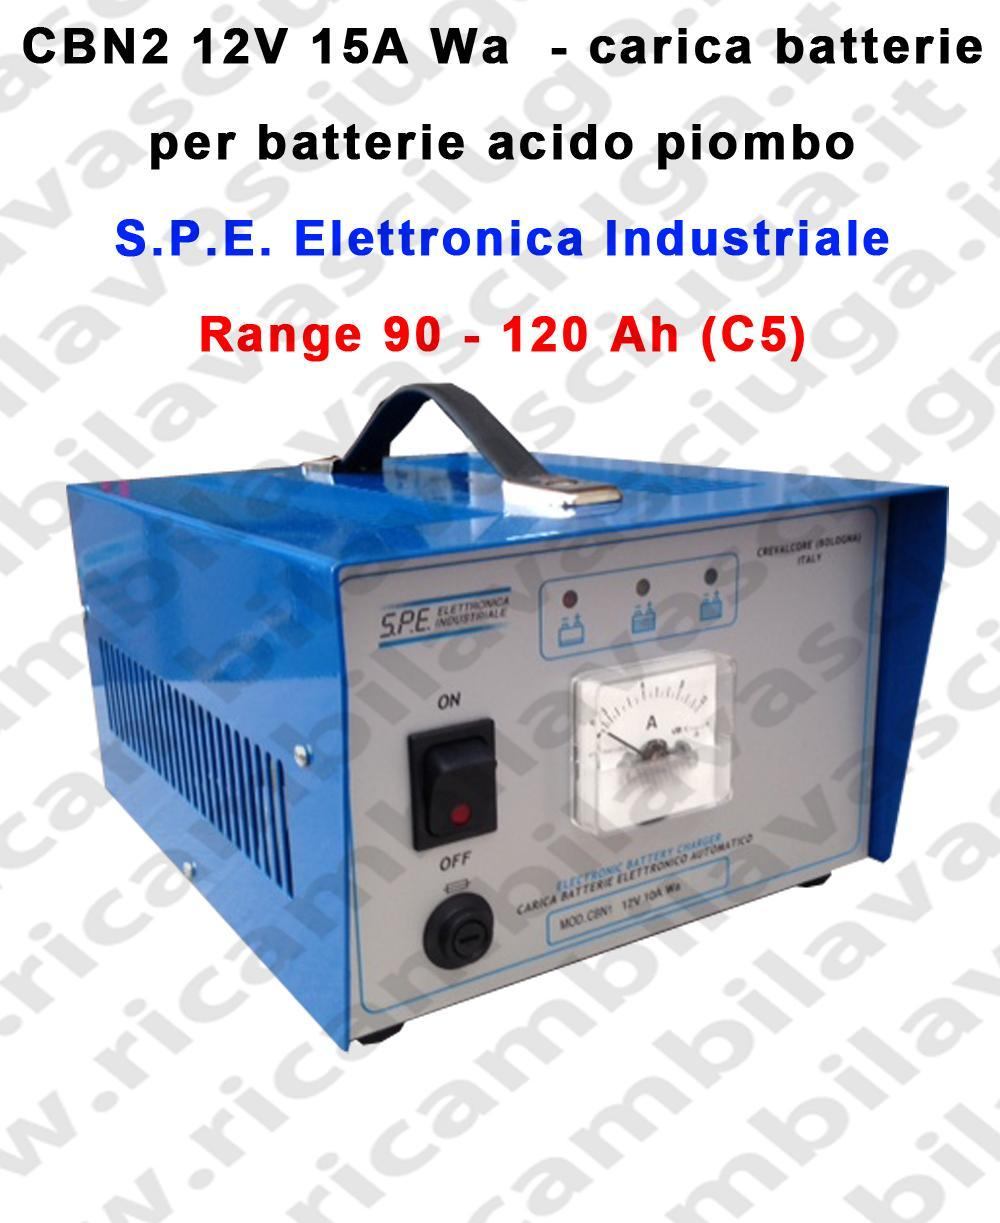 CBN2 12V 15A Wa Battery Charger for acid plombe battery S.P.E. Elettronica Industriale